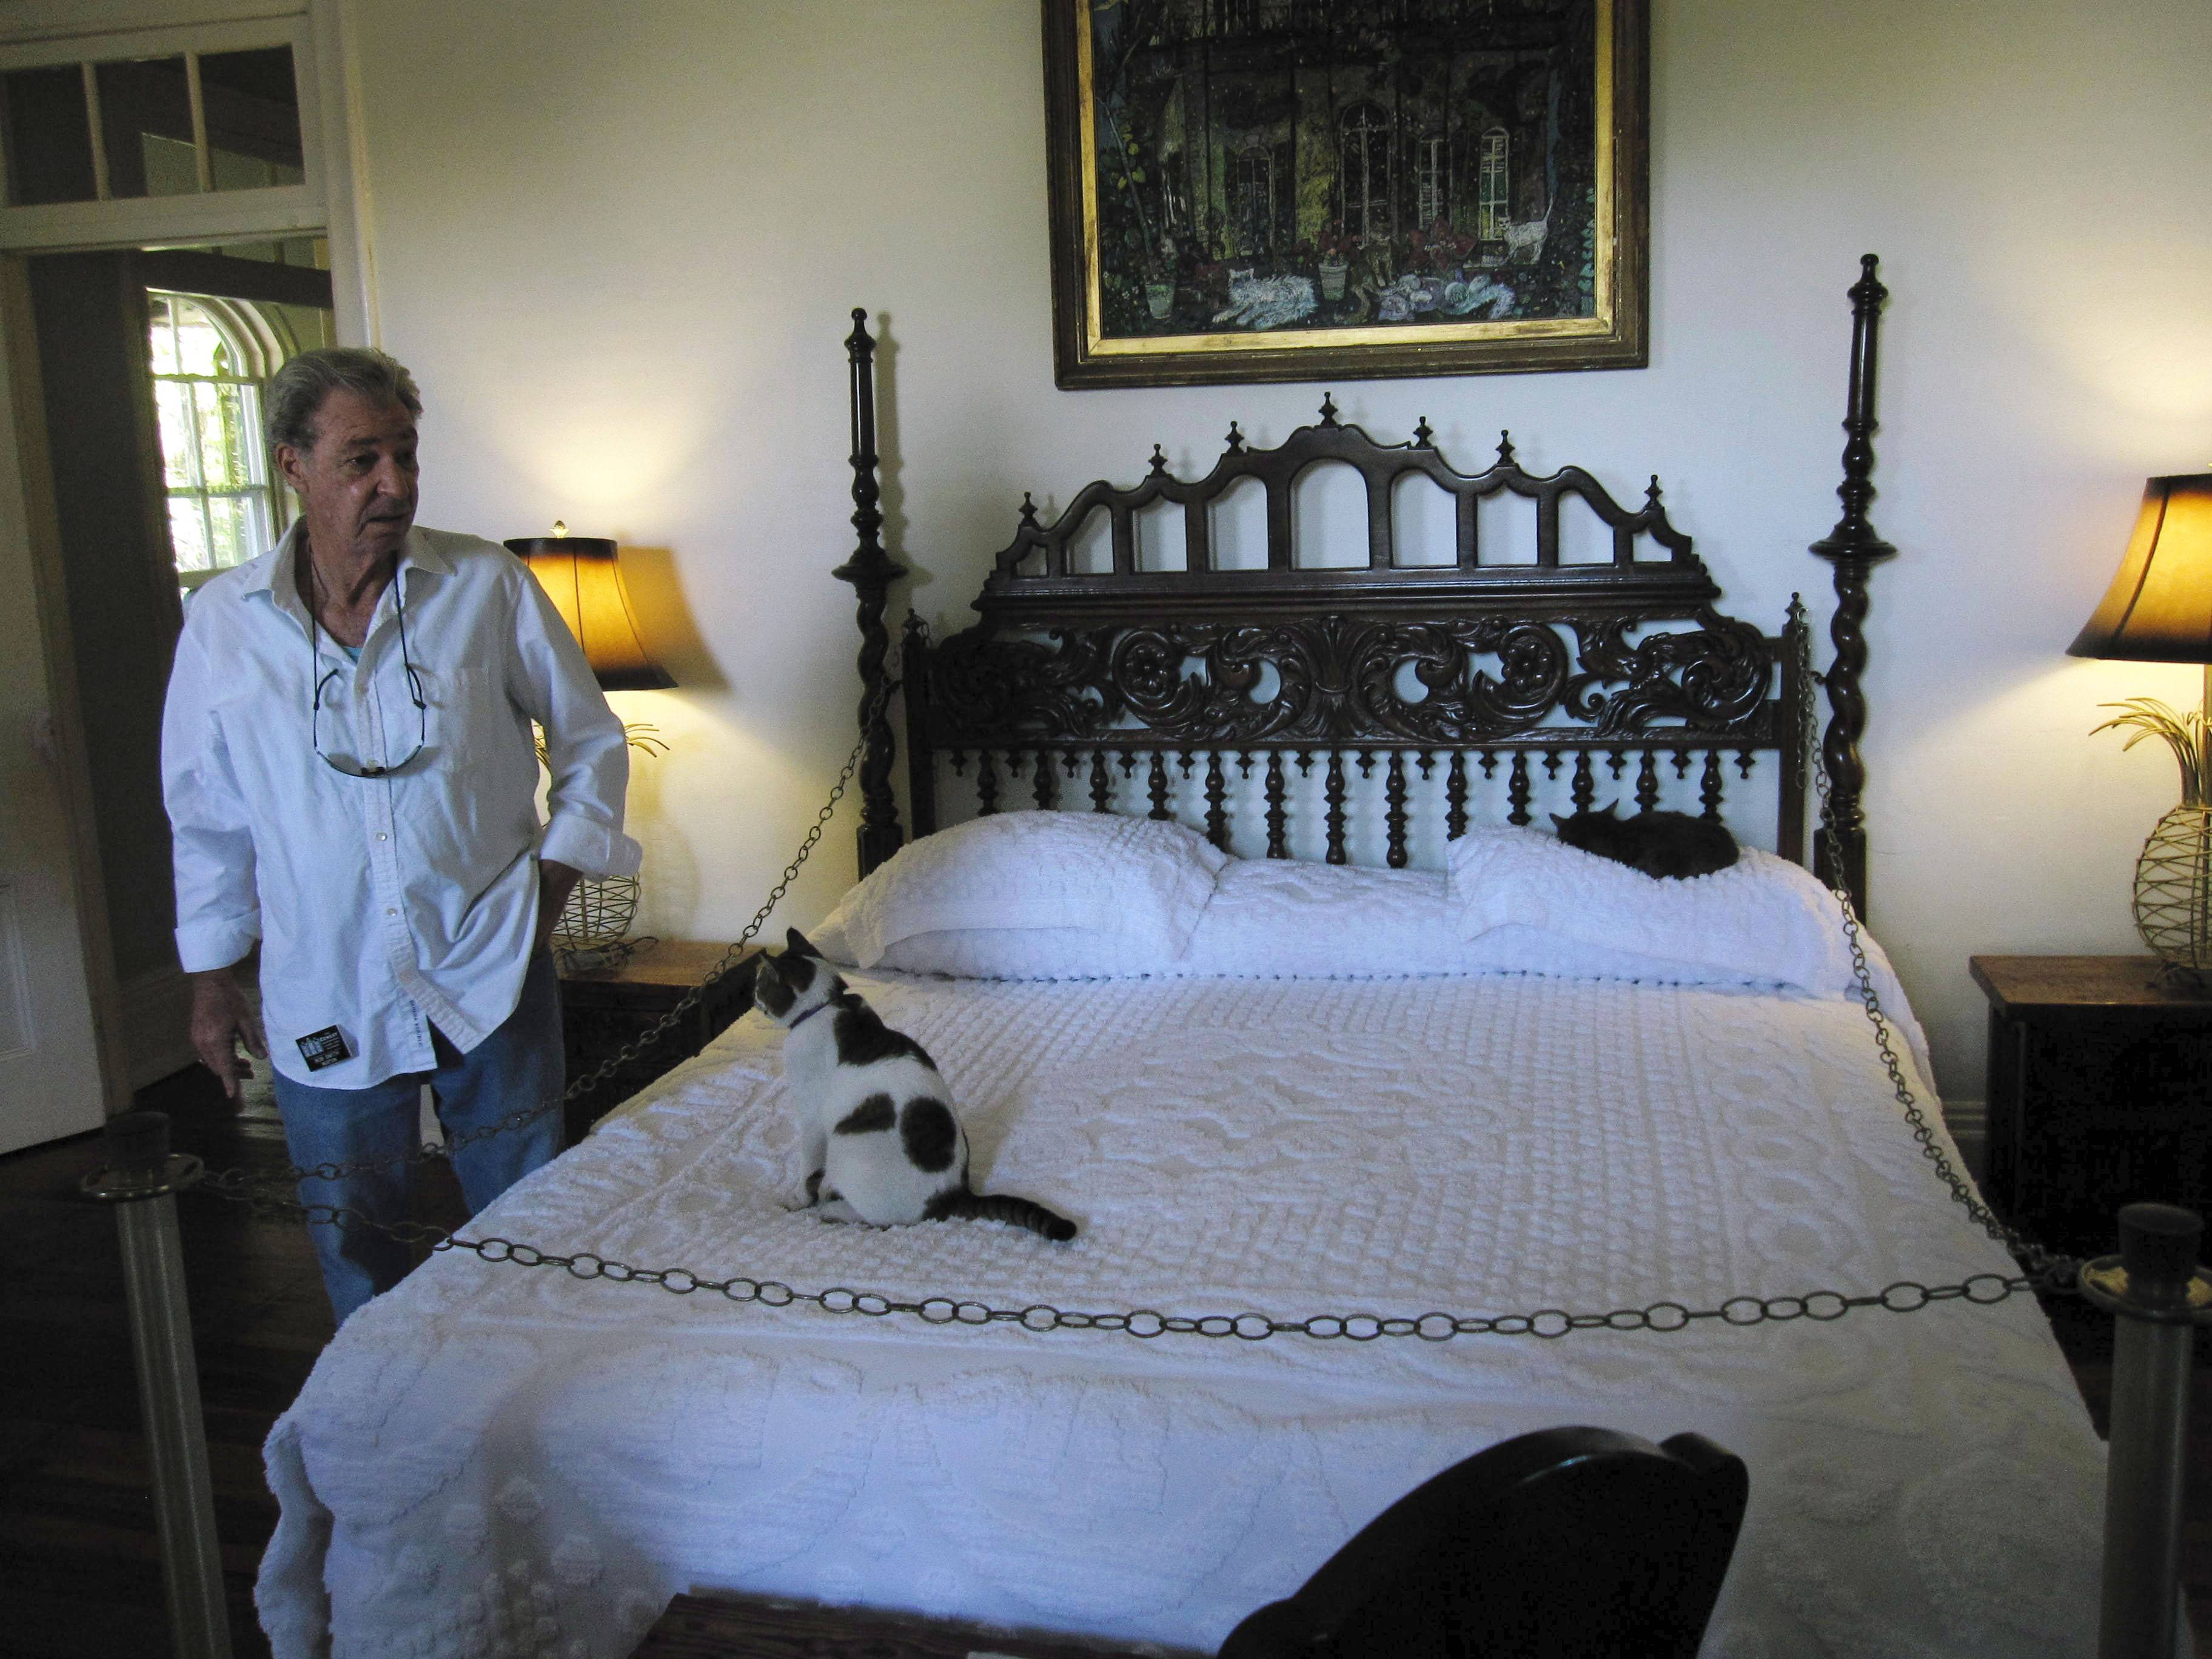 Tour guide Bob Smith at the Hemingway Home in Key West, Fla., comes across one of the home's cats, named Fats Waller. The home belonged to the late author Ernest Hemingway, who had a six-toed cat, and many of the 40 to 50 cats who reside there today have the polydactyl gene for an extra toe.